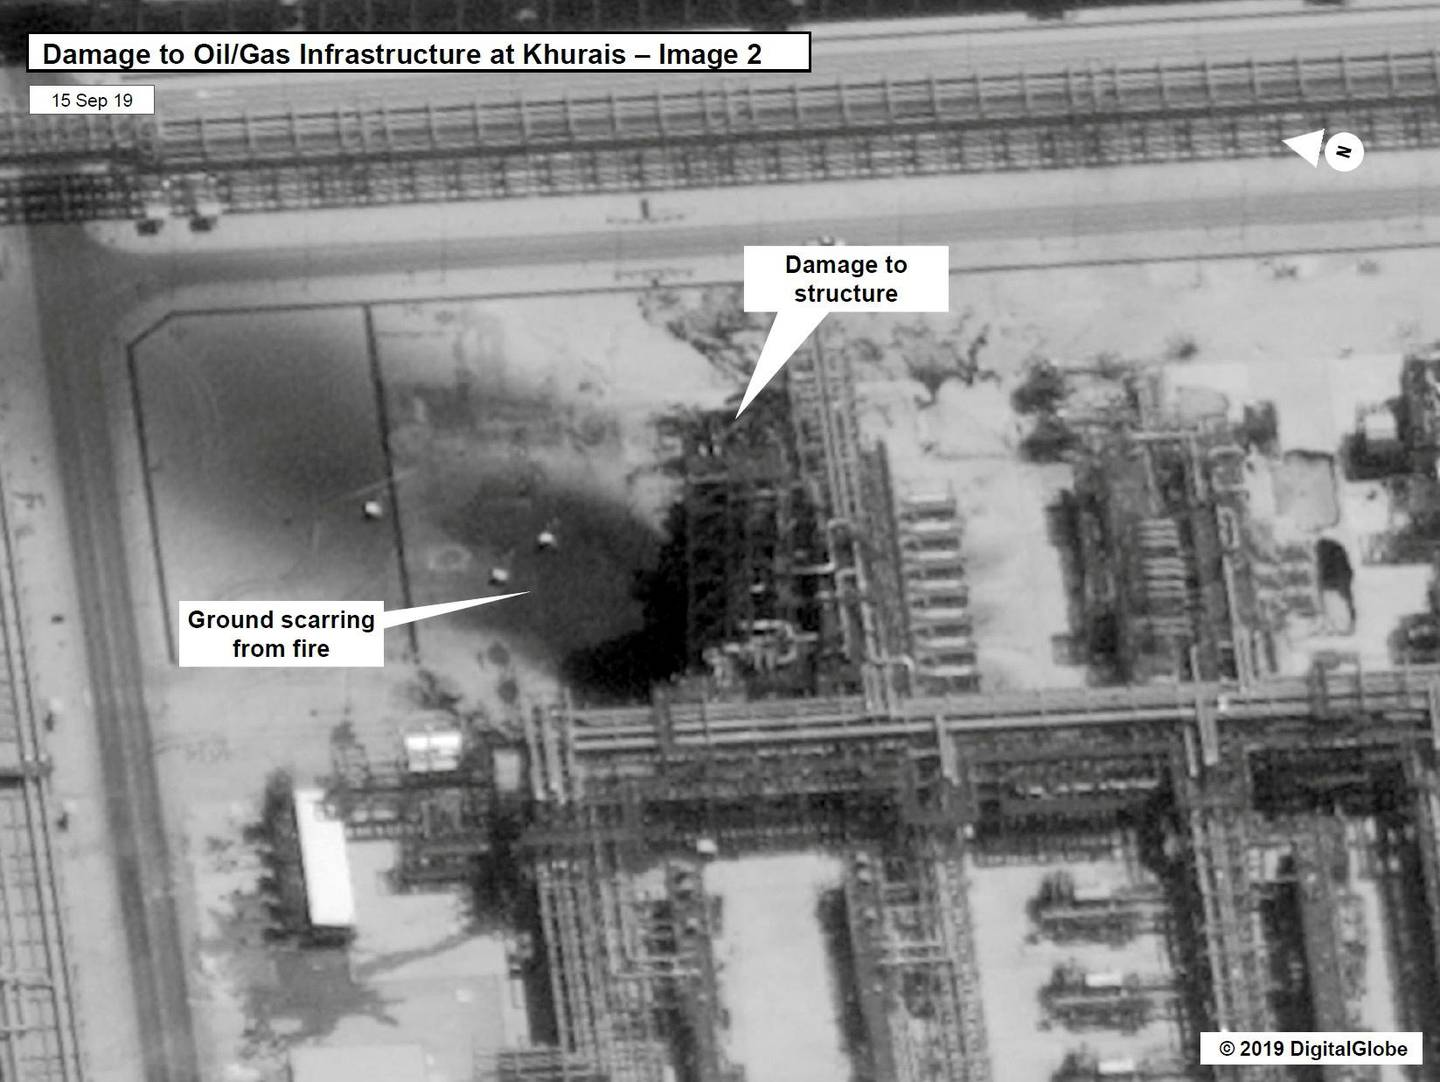 A satellite image showing damage to oil/gas Saudi Aramco infrastructure at Khurais, in Saudi Arabia in this handout picture released by the U.S Government September 15, 2019.  U.S. Government/DigitalGlobe/Handout via REUTERS    THIS IMAGE HAS BEEN SUPPLIED BY A THIRD PARTY. NO RESALES. NO ARCHIVES     TPX IMAGES OF THE DAY